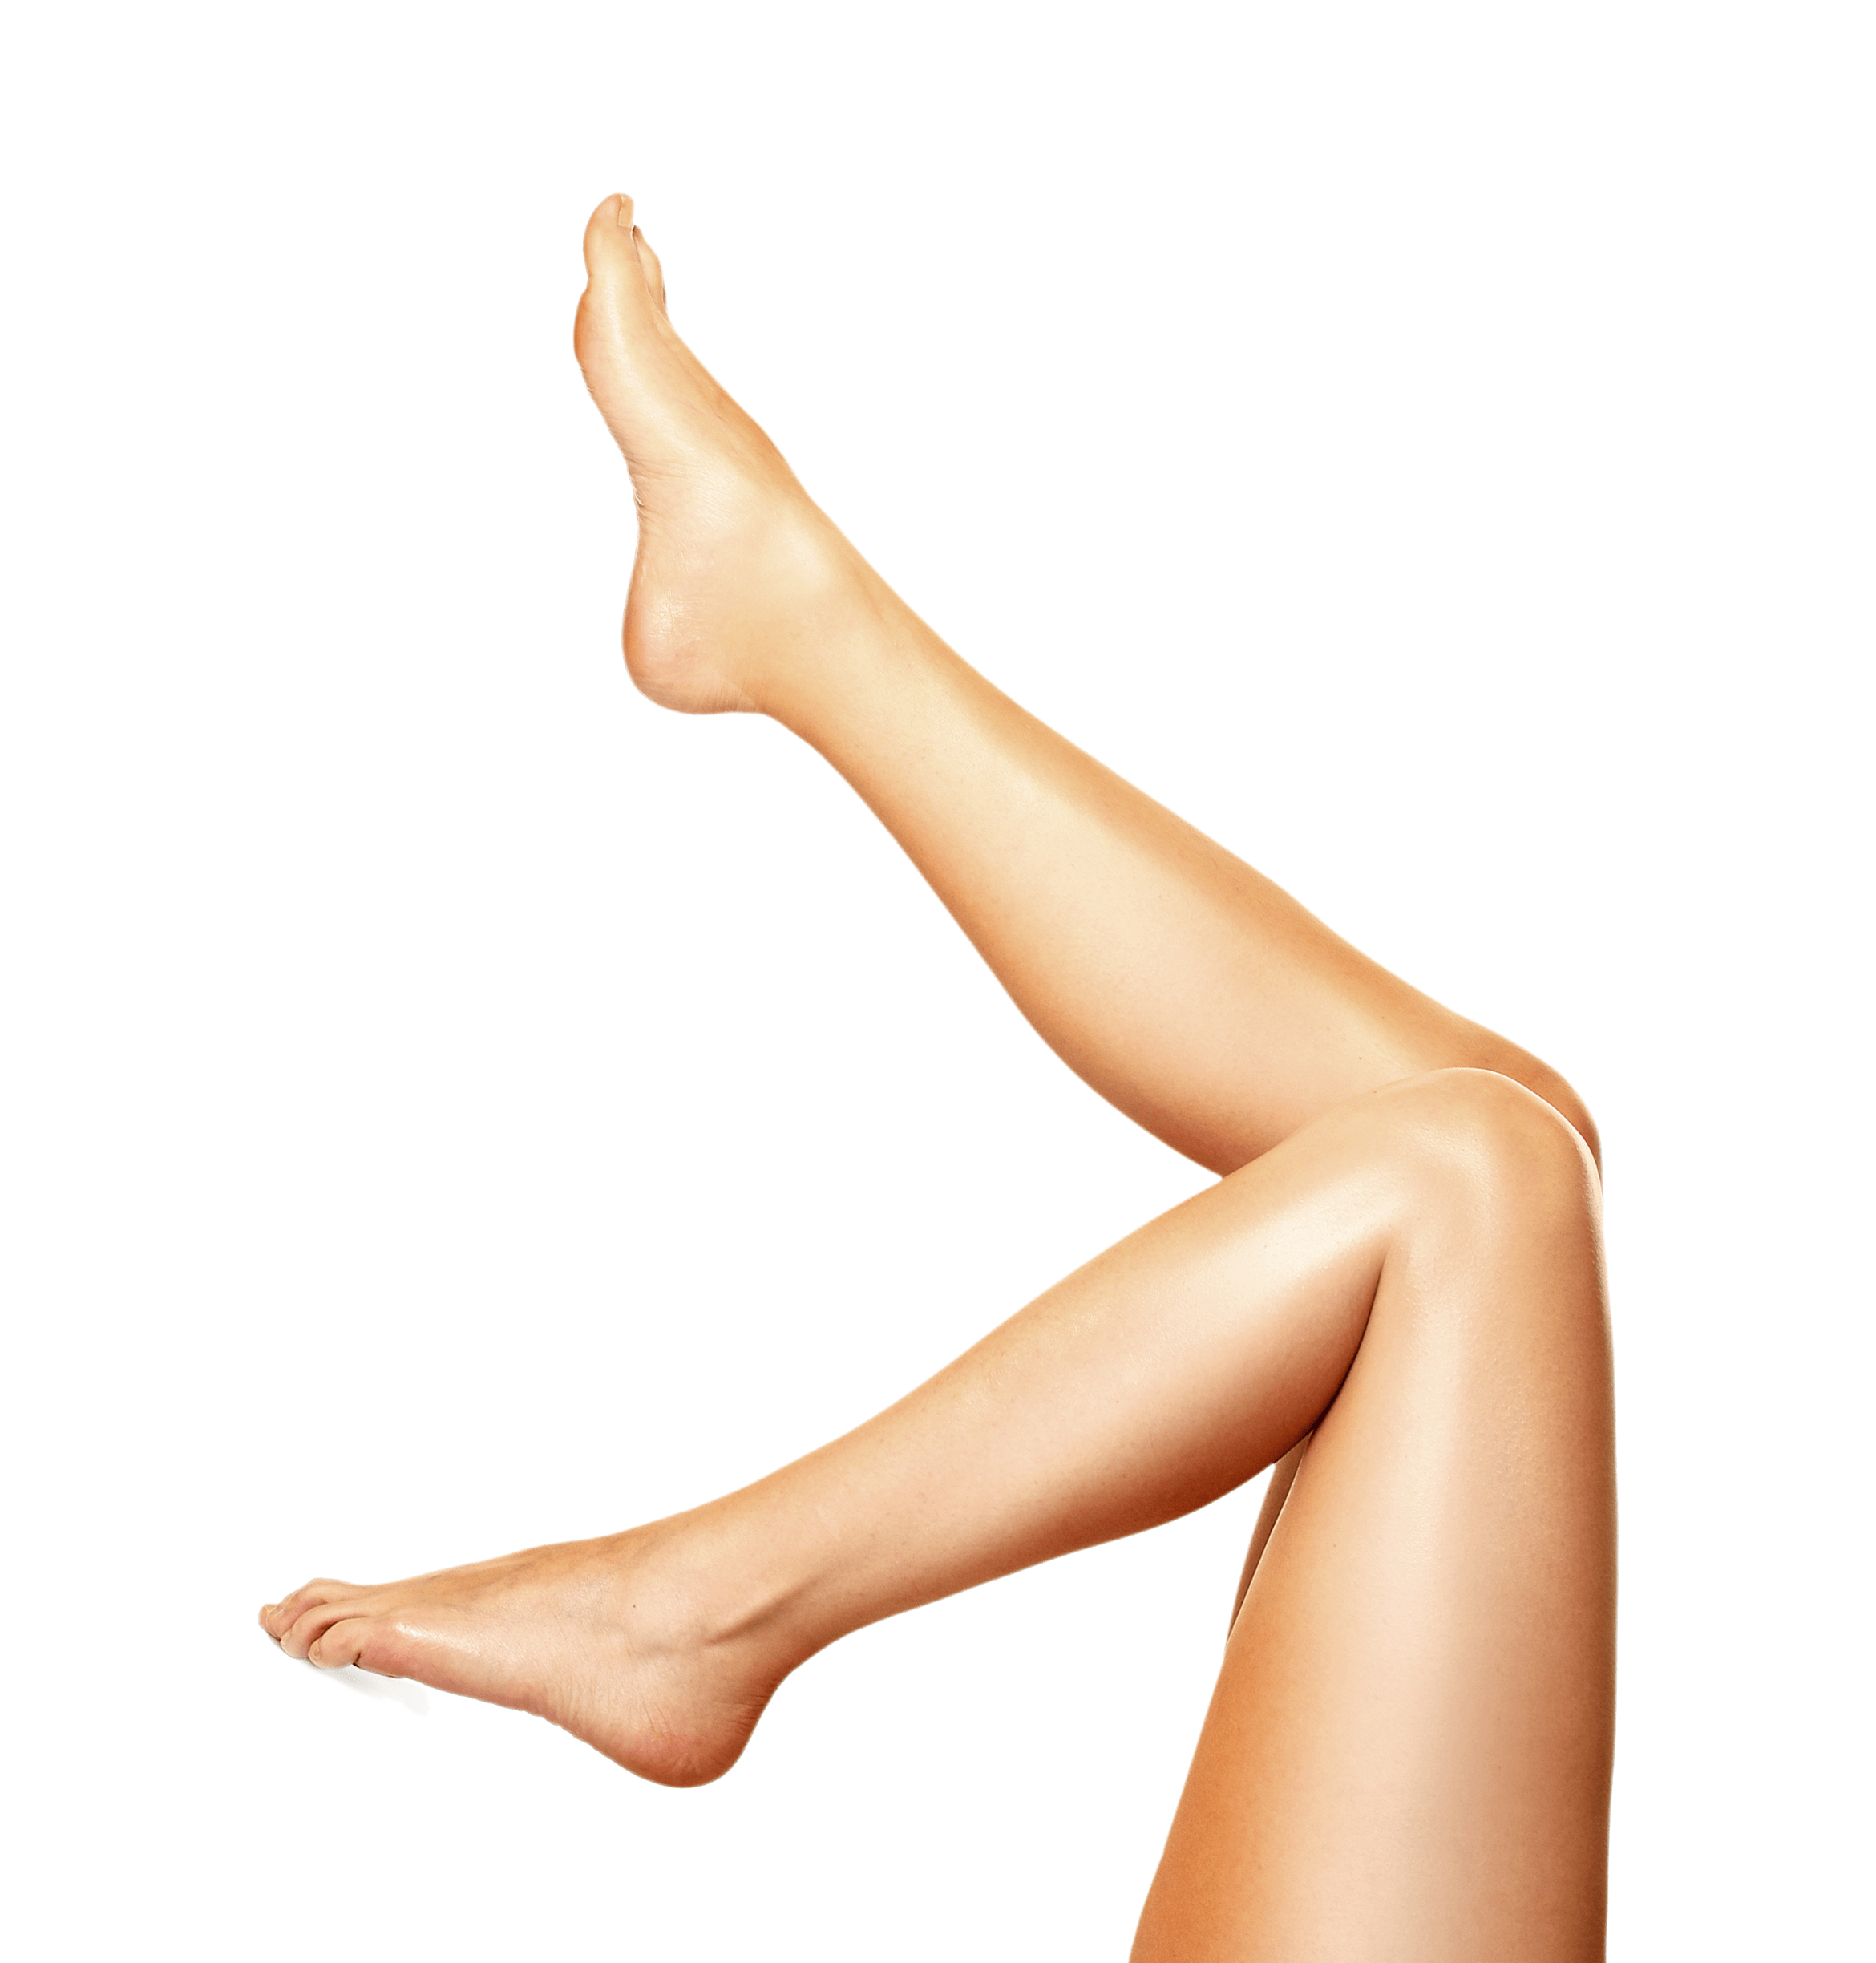 Cycling Up Women Legs - Leg PNG